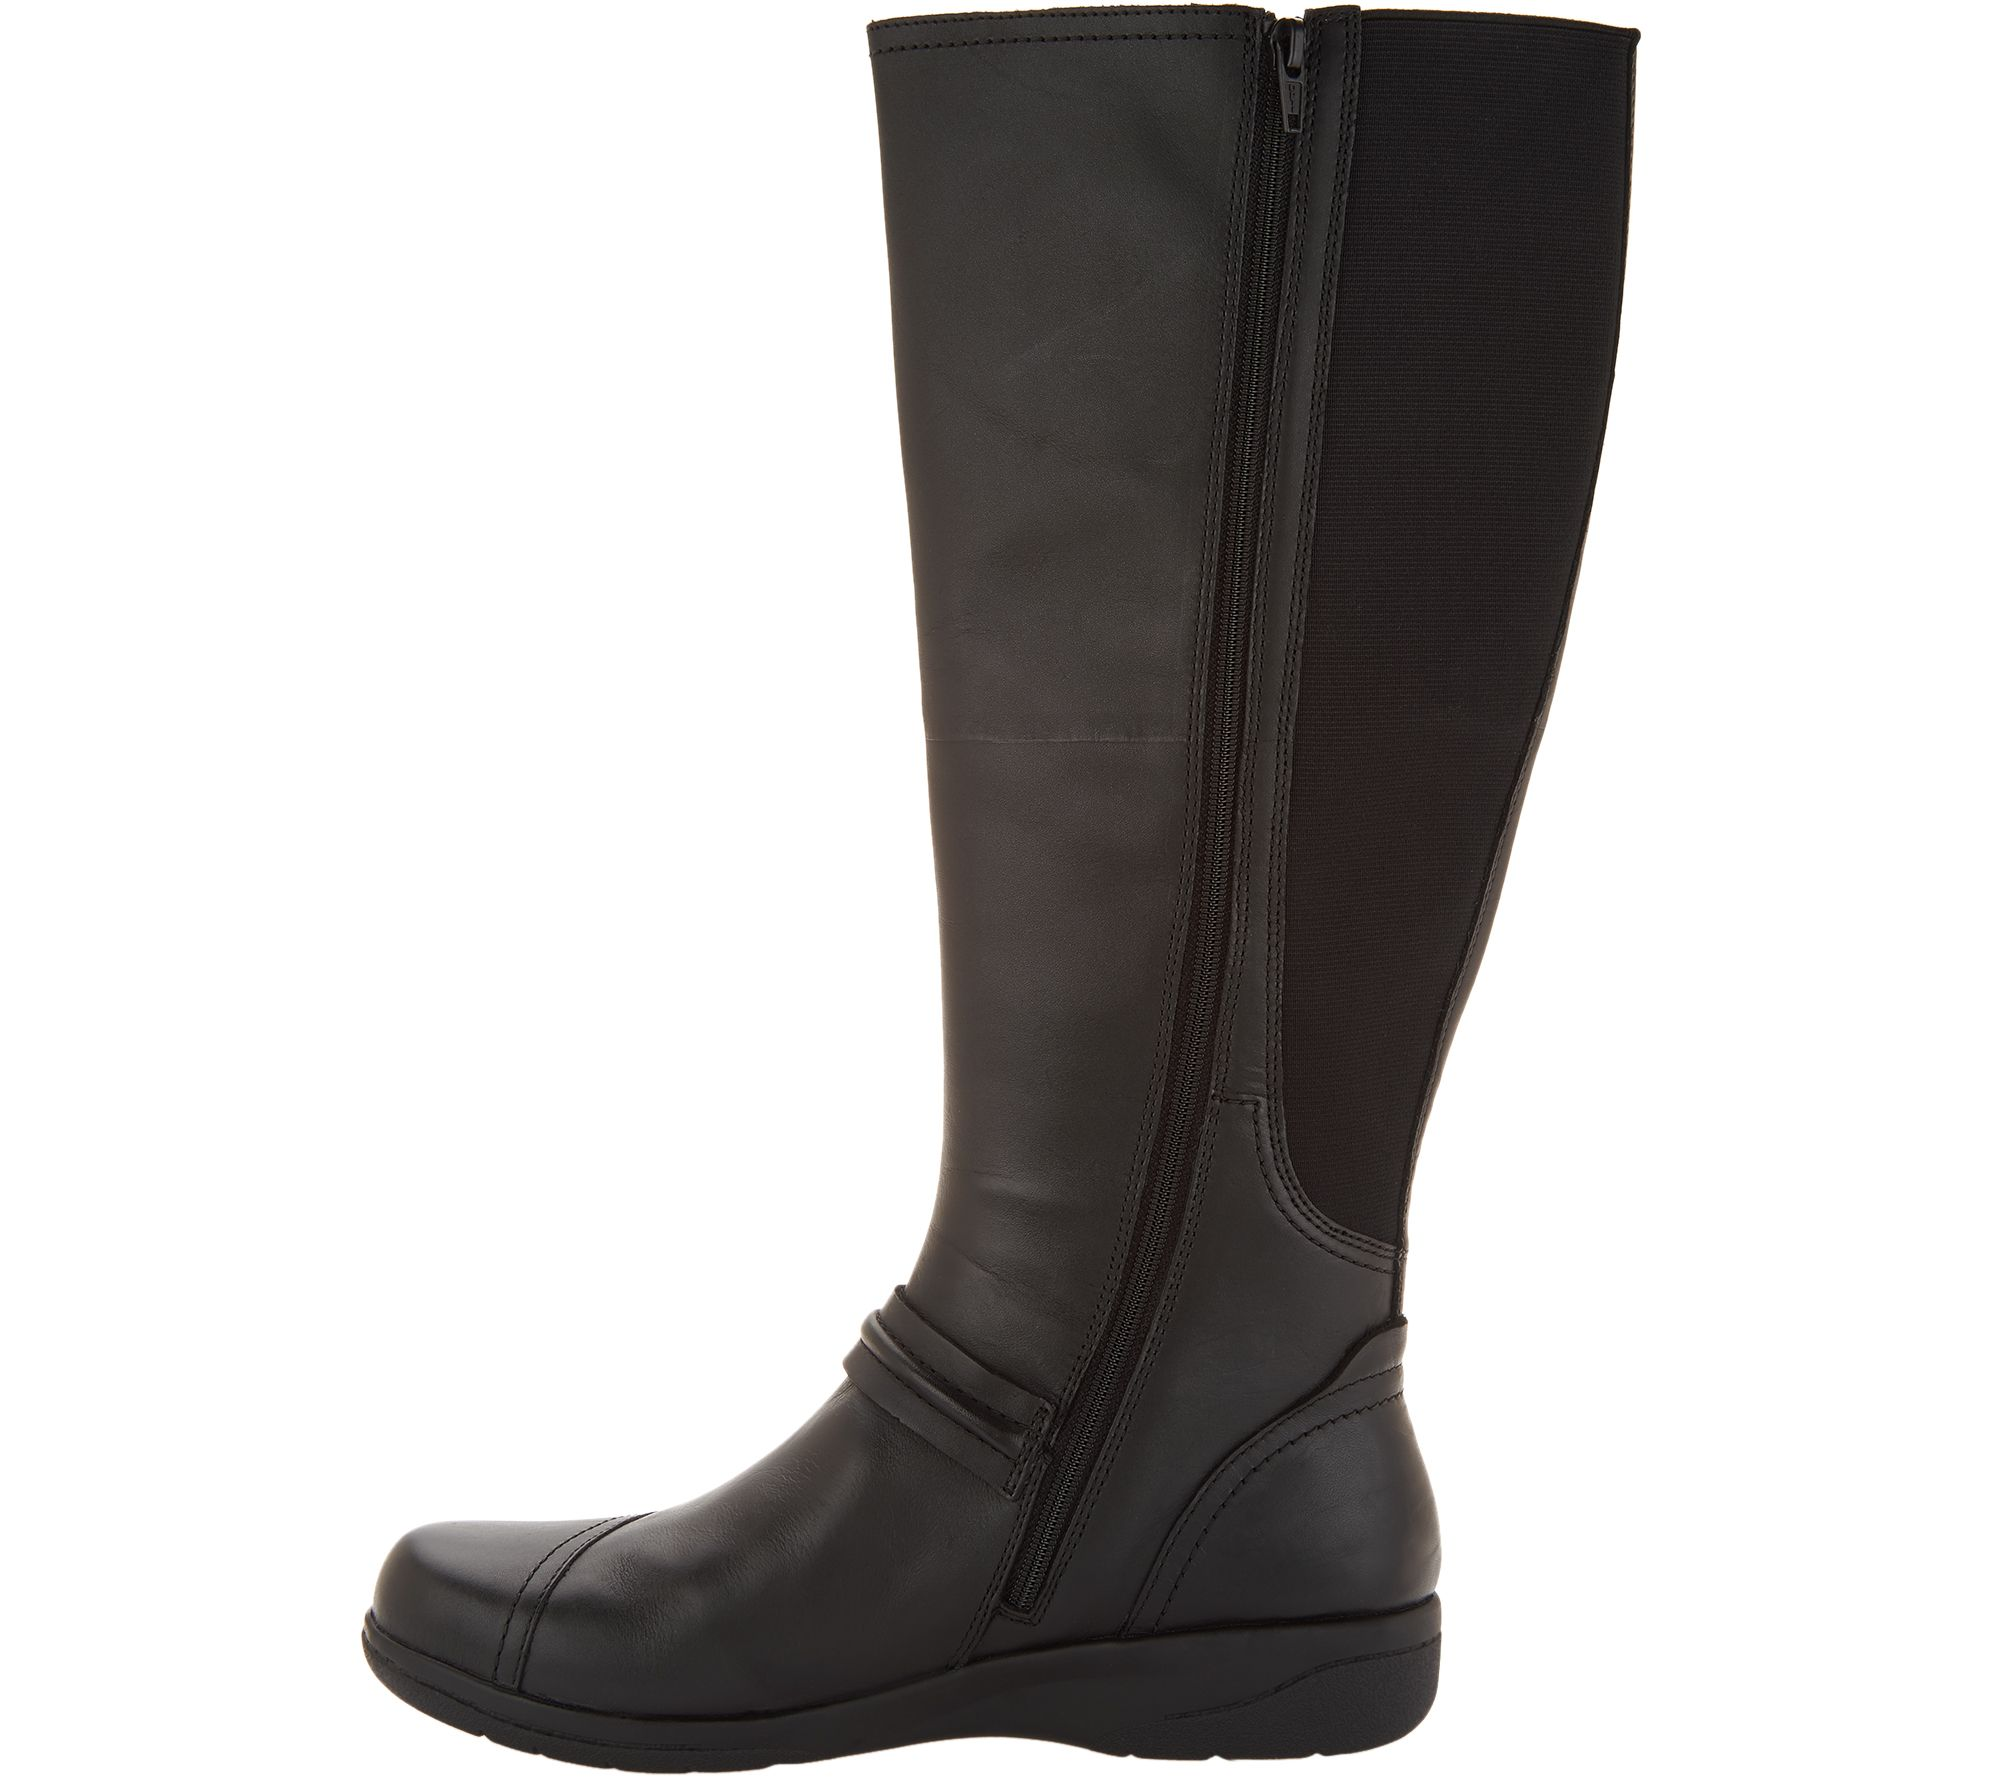 8b72746bb25 Clarks Leather Wide Calf Tall Shaft Boots - Cheyn Whisk - Page 1 — QVC.com